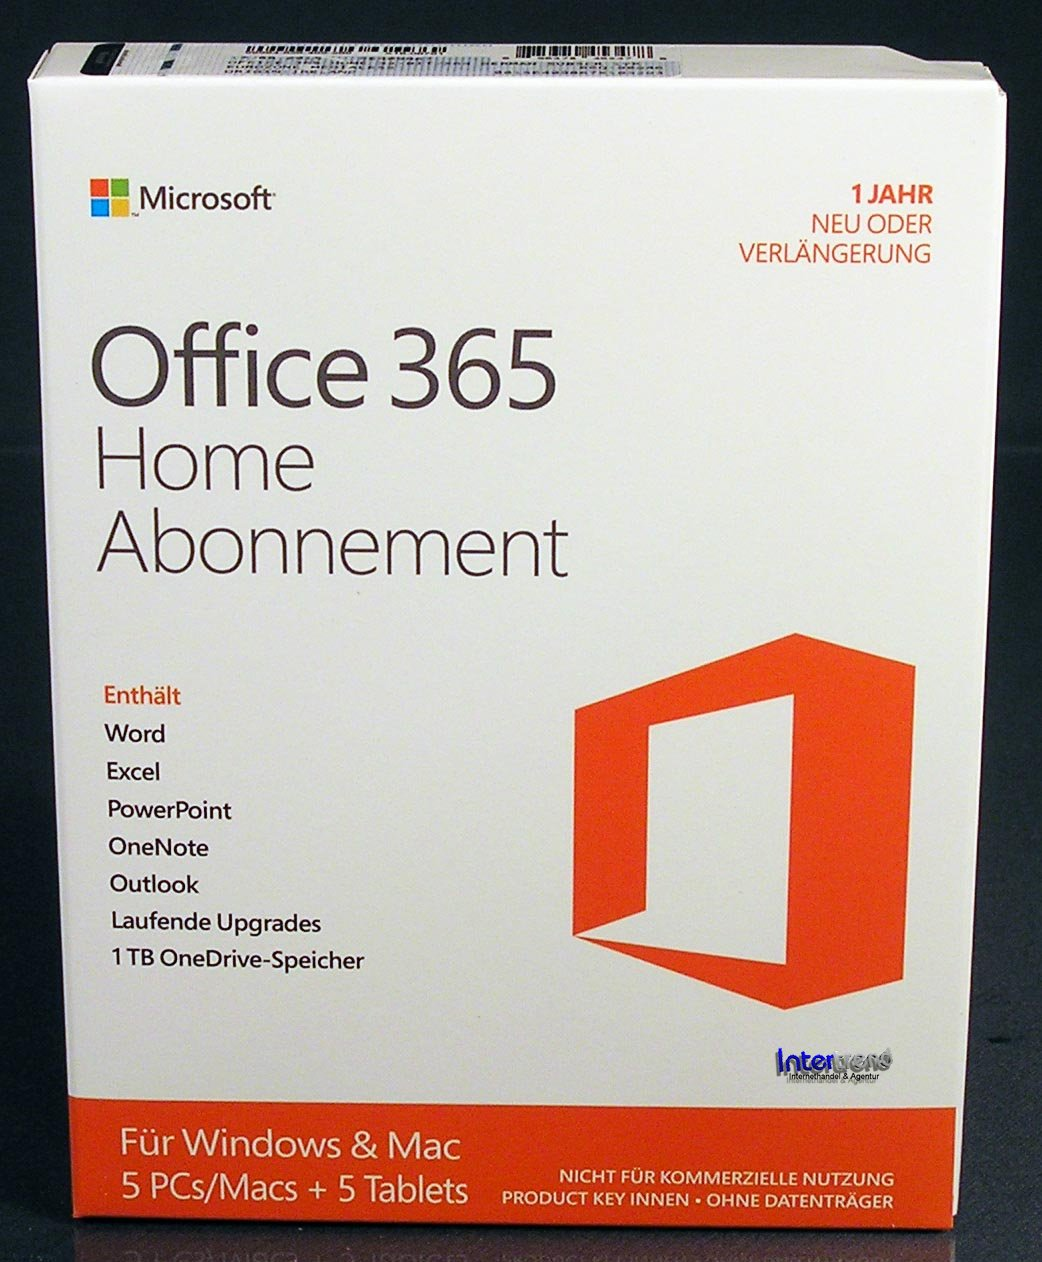 microsoft office 365 home 2016 vollversion box 5 pc mac 5 tablets 32 64 abo ebay. Black Bedroom Furniture Sets. Home Design Ideas